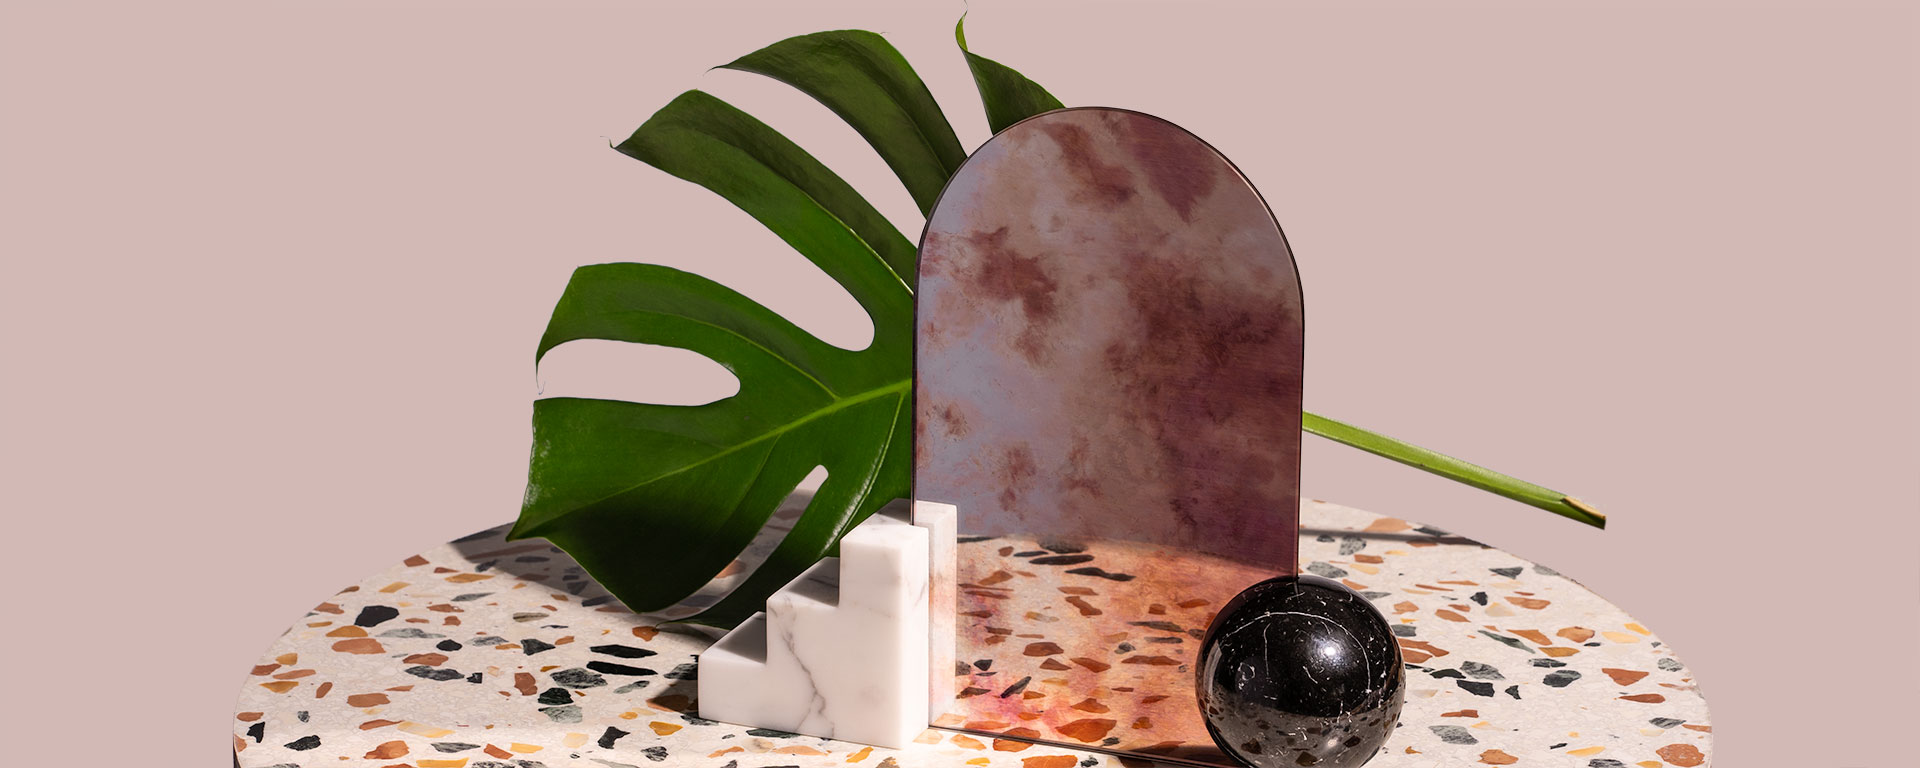 staircase-marble-mirror-charlotte-taylor-1920x768